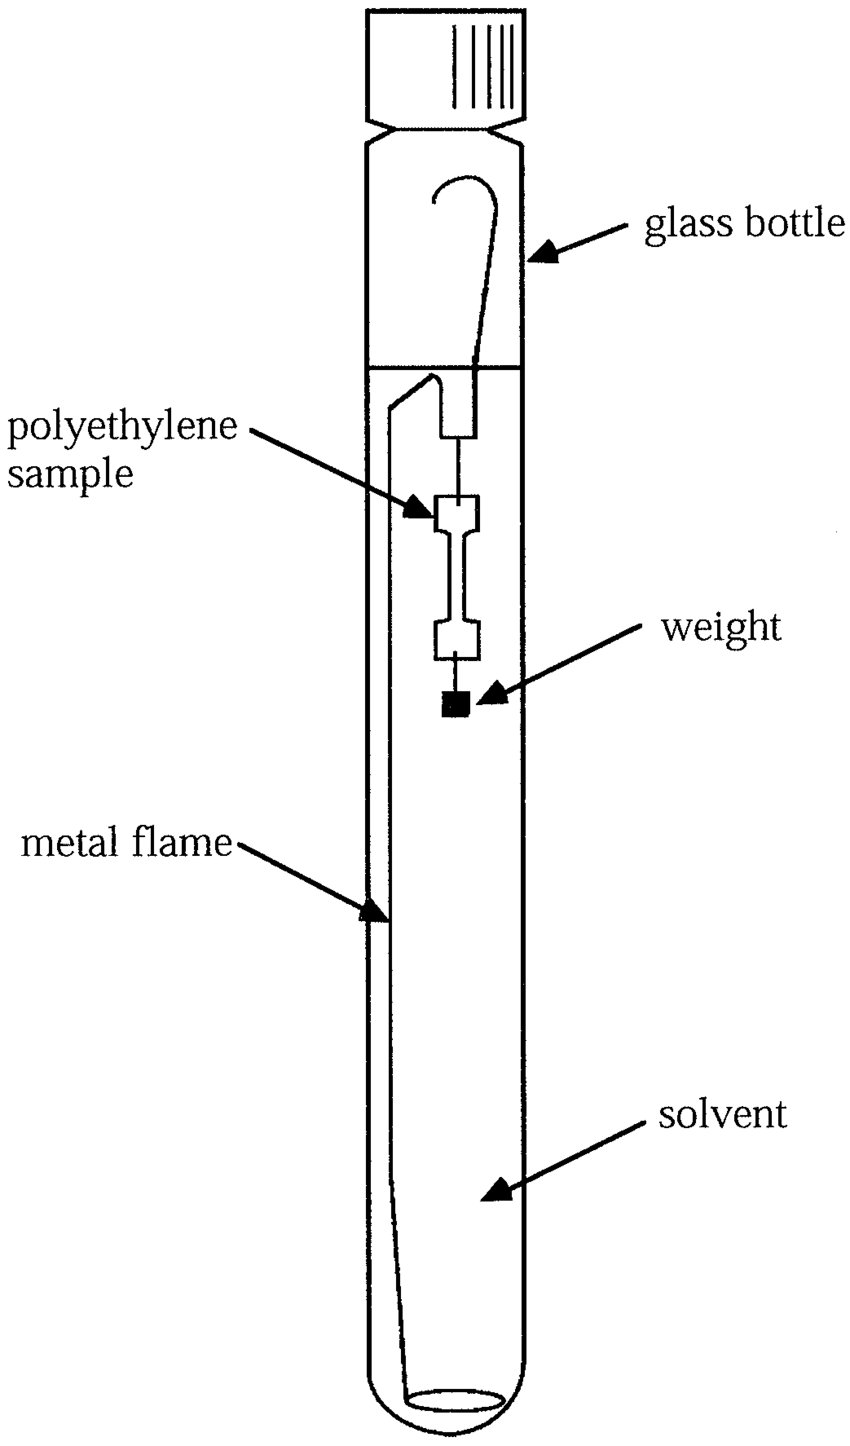 hight resolution of schematic representation of the glass bottle used for swelling